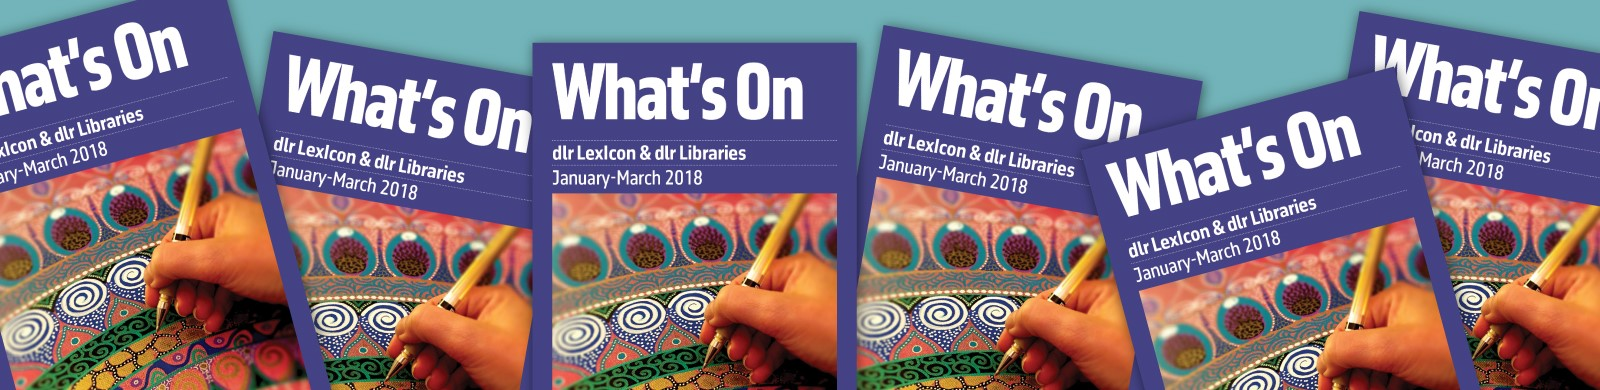 dlr Libraries What's On for January to March 2018